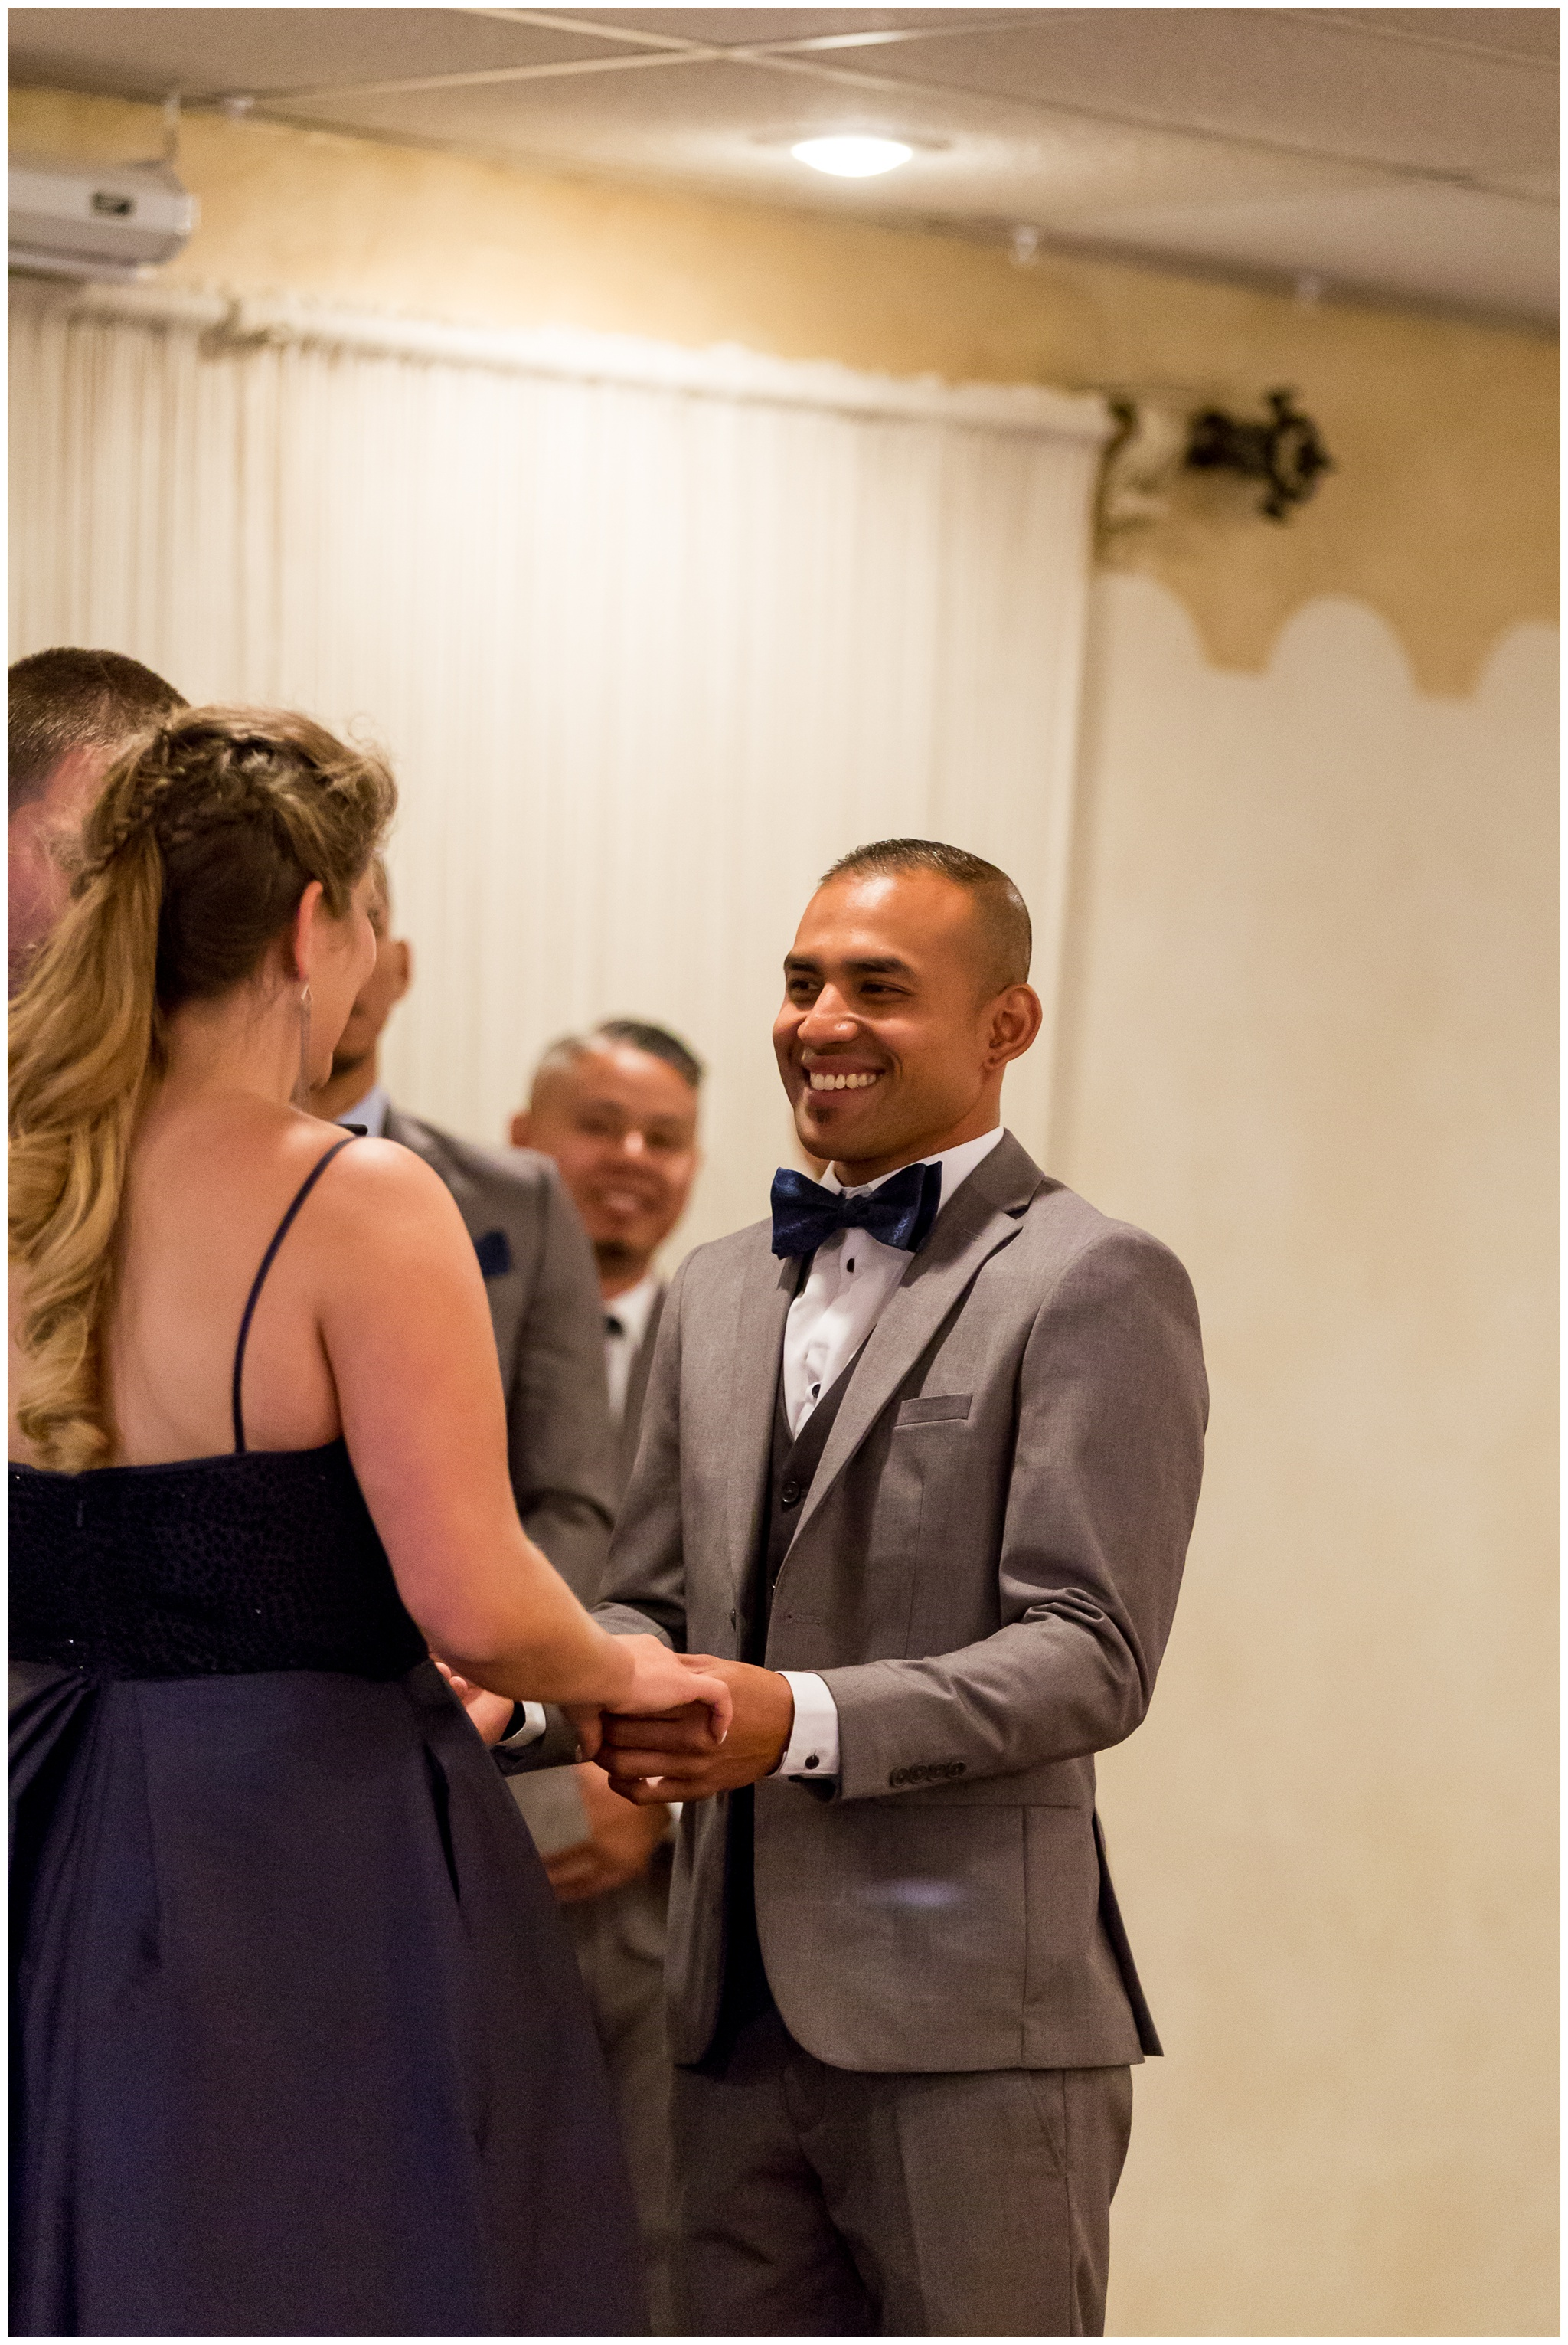 groom smiling at bride during wedding ceremony at Romer's Catering in Greenville Ohio